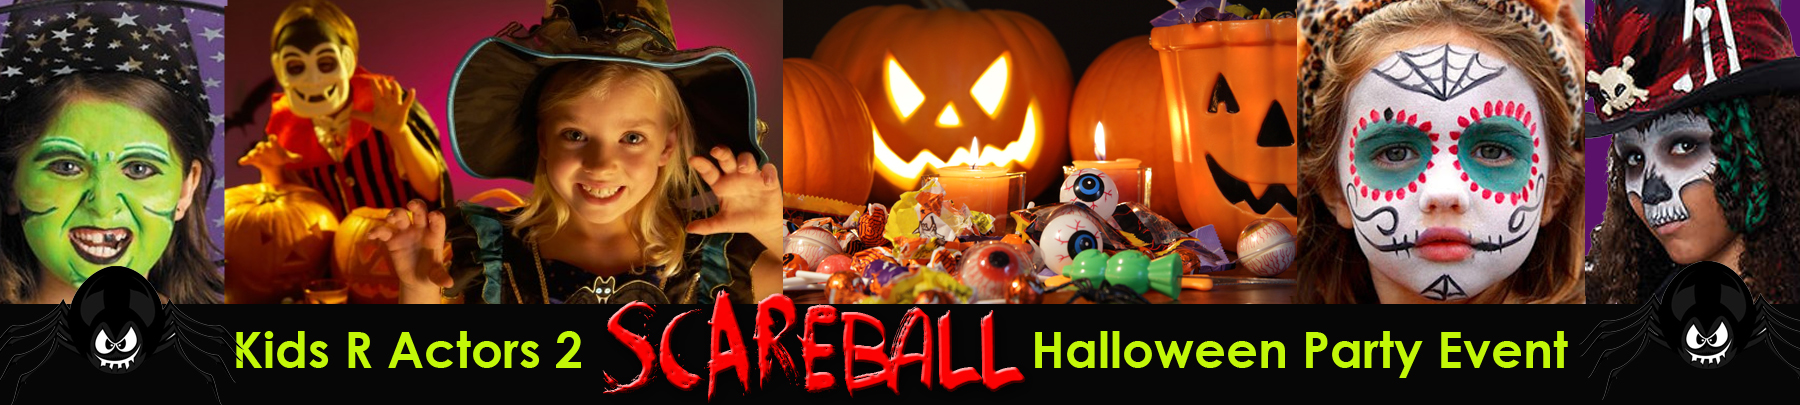 on october 28 2017 big and small monsters witches cute vampires dracula frankenstein super heros princesses and many more creatures will be among - Halloween Actors 2017